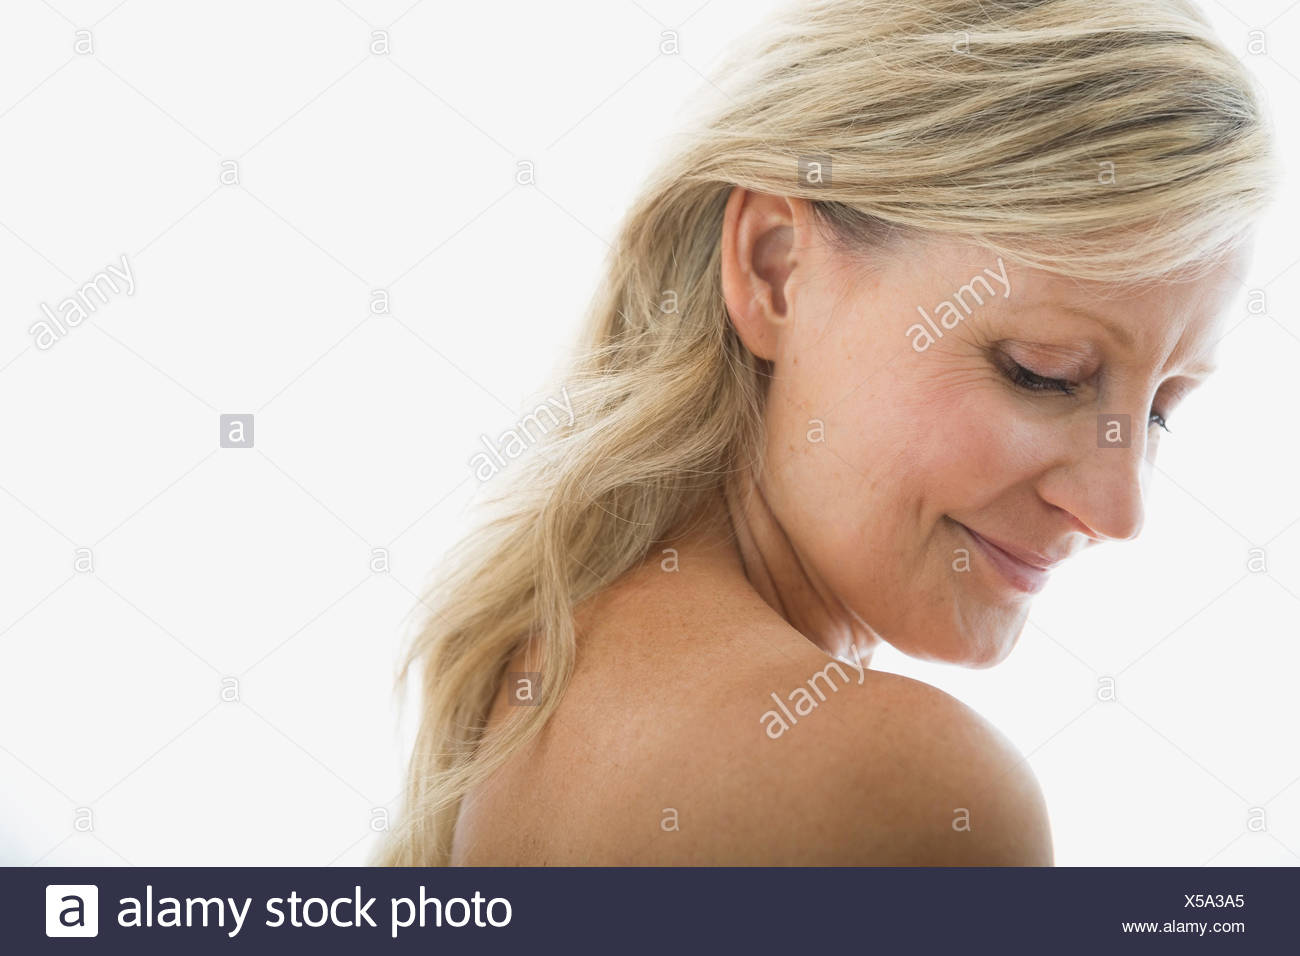 Blonde woman looking down at bare shoulder - Stock Image